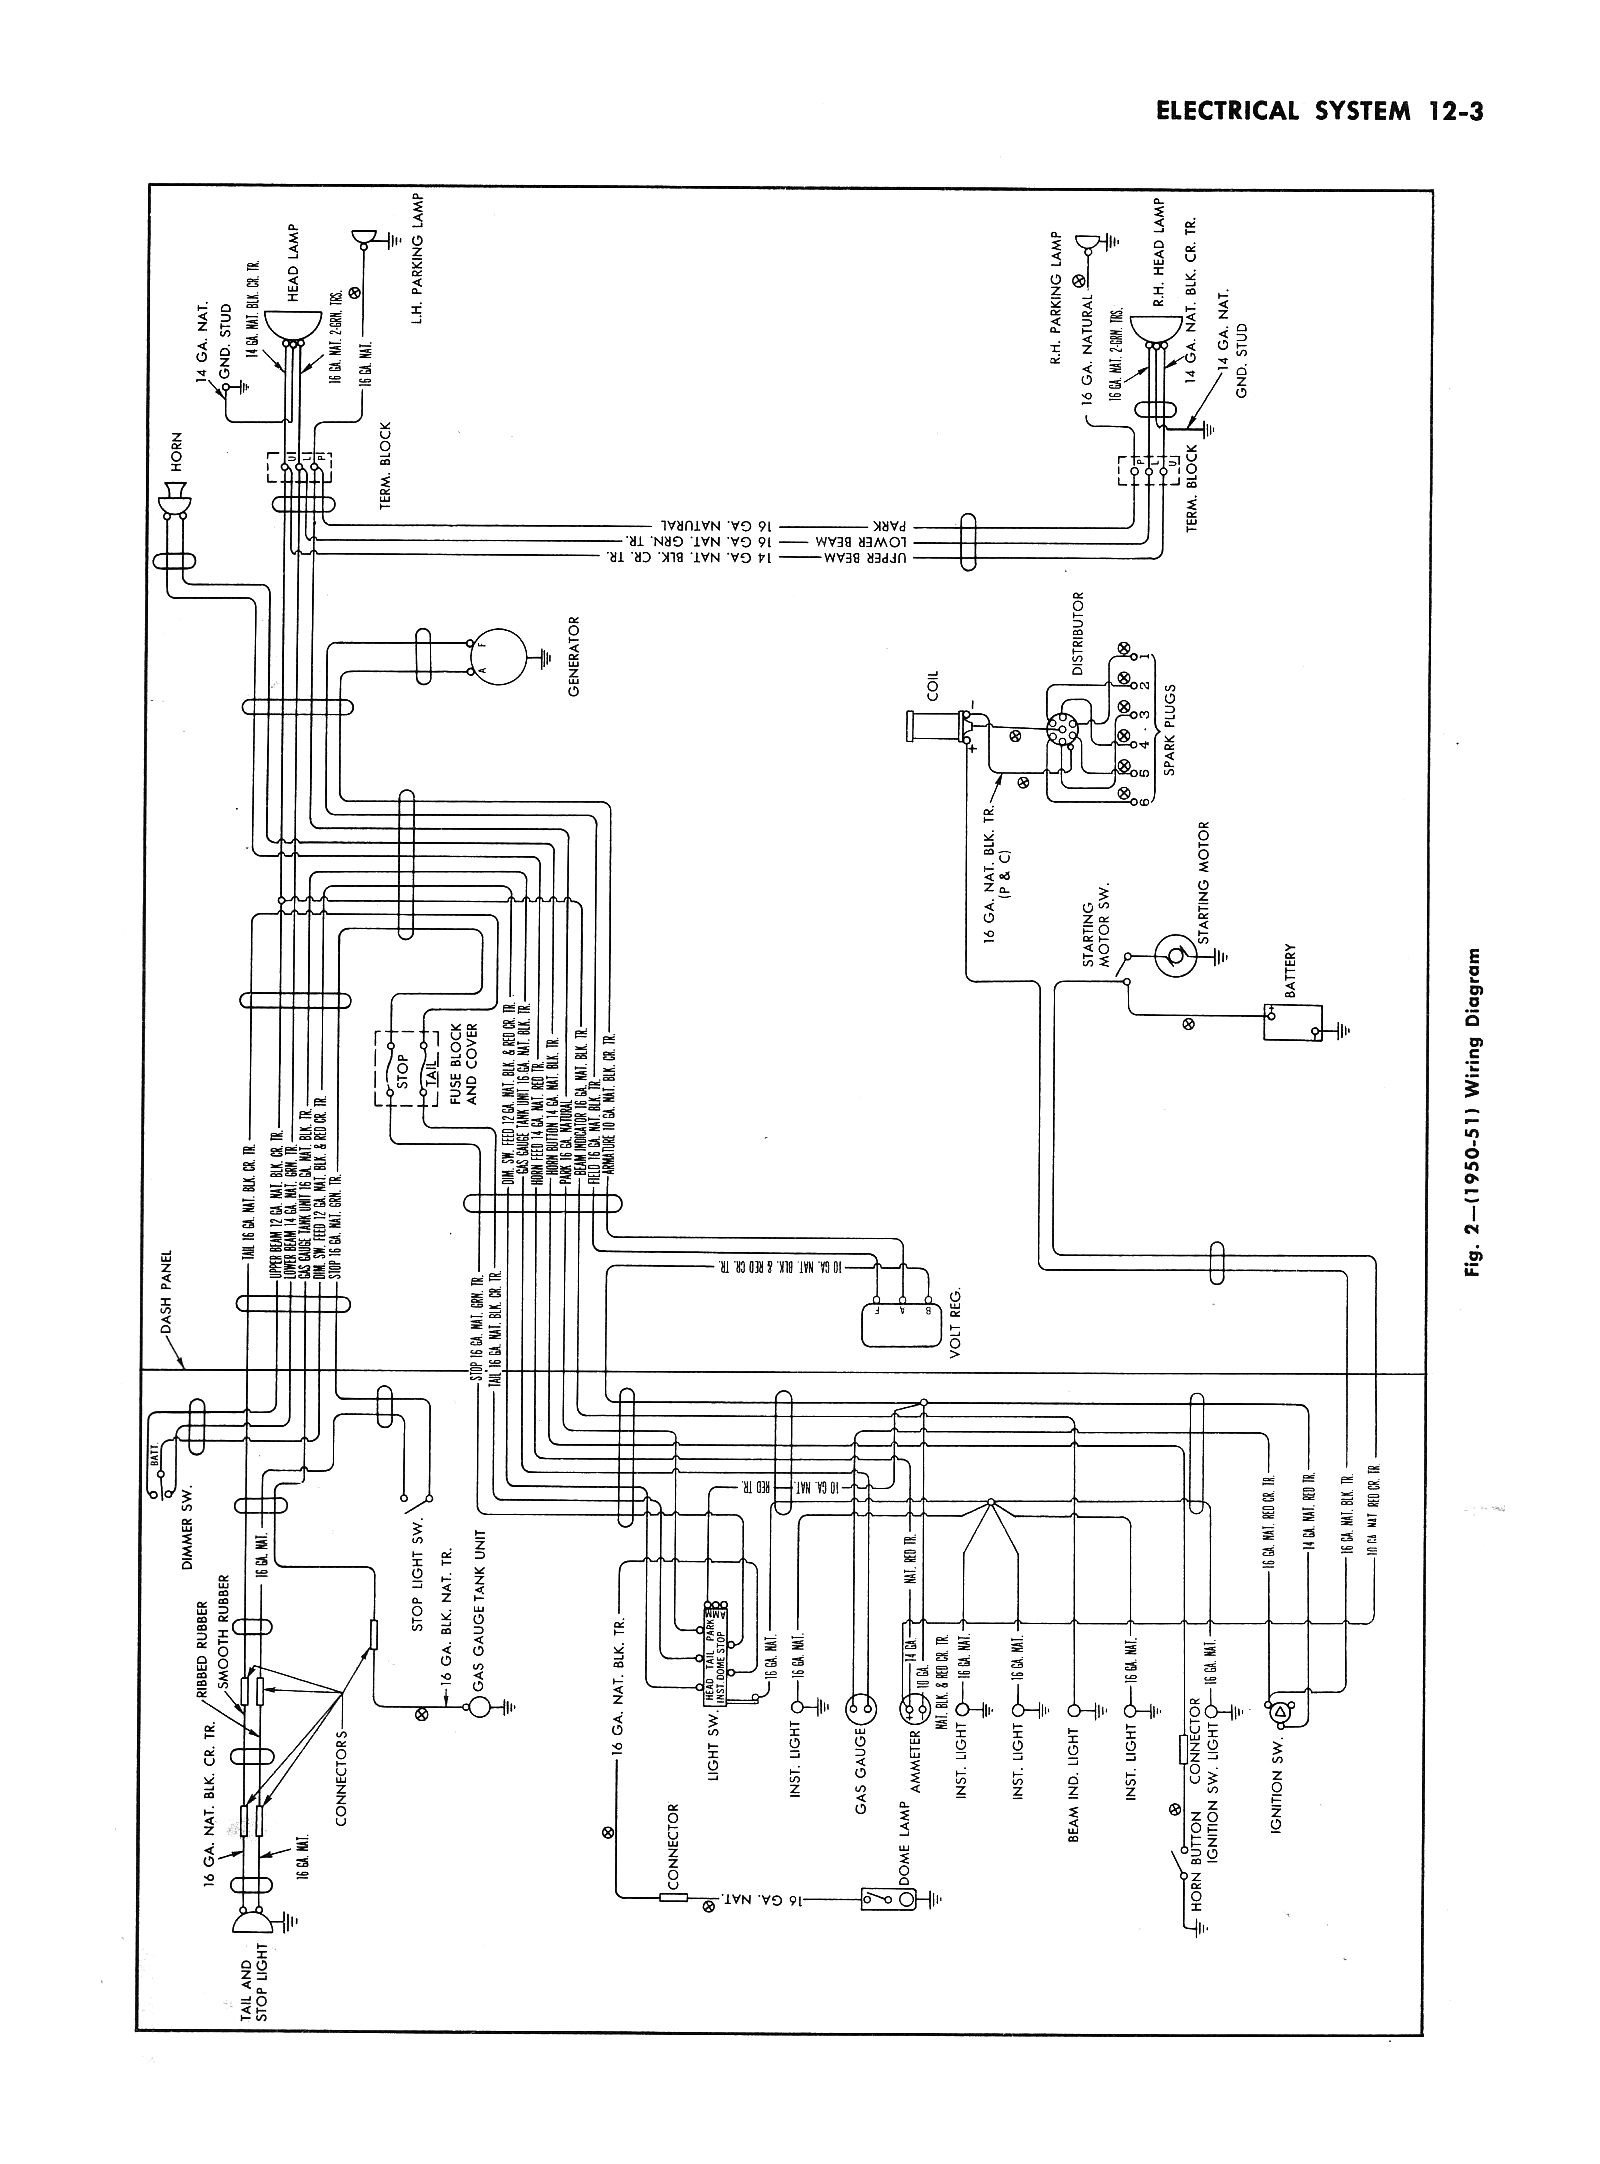 50ctsm1203 chevy wiring diagrams 1999 Ram 1500 5.2L V8 at cos-gaming.co